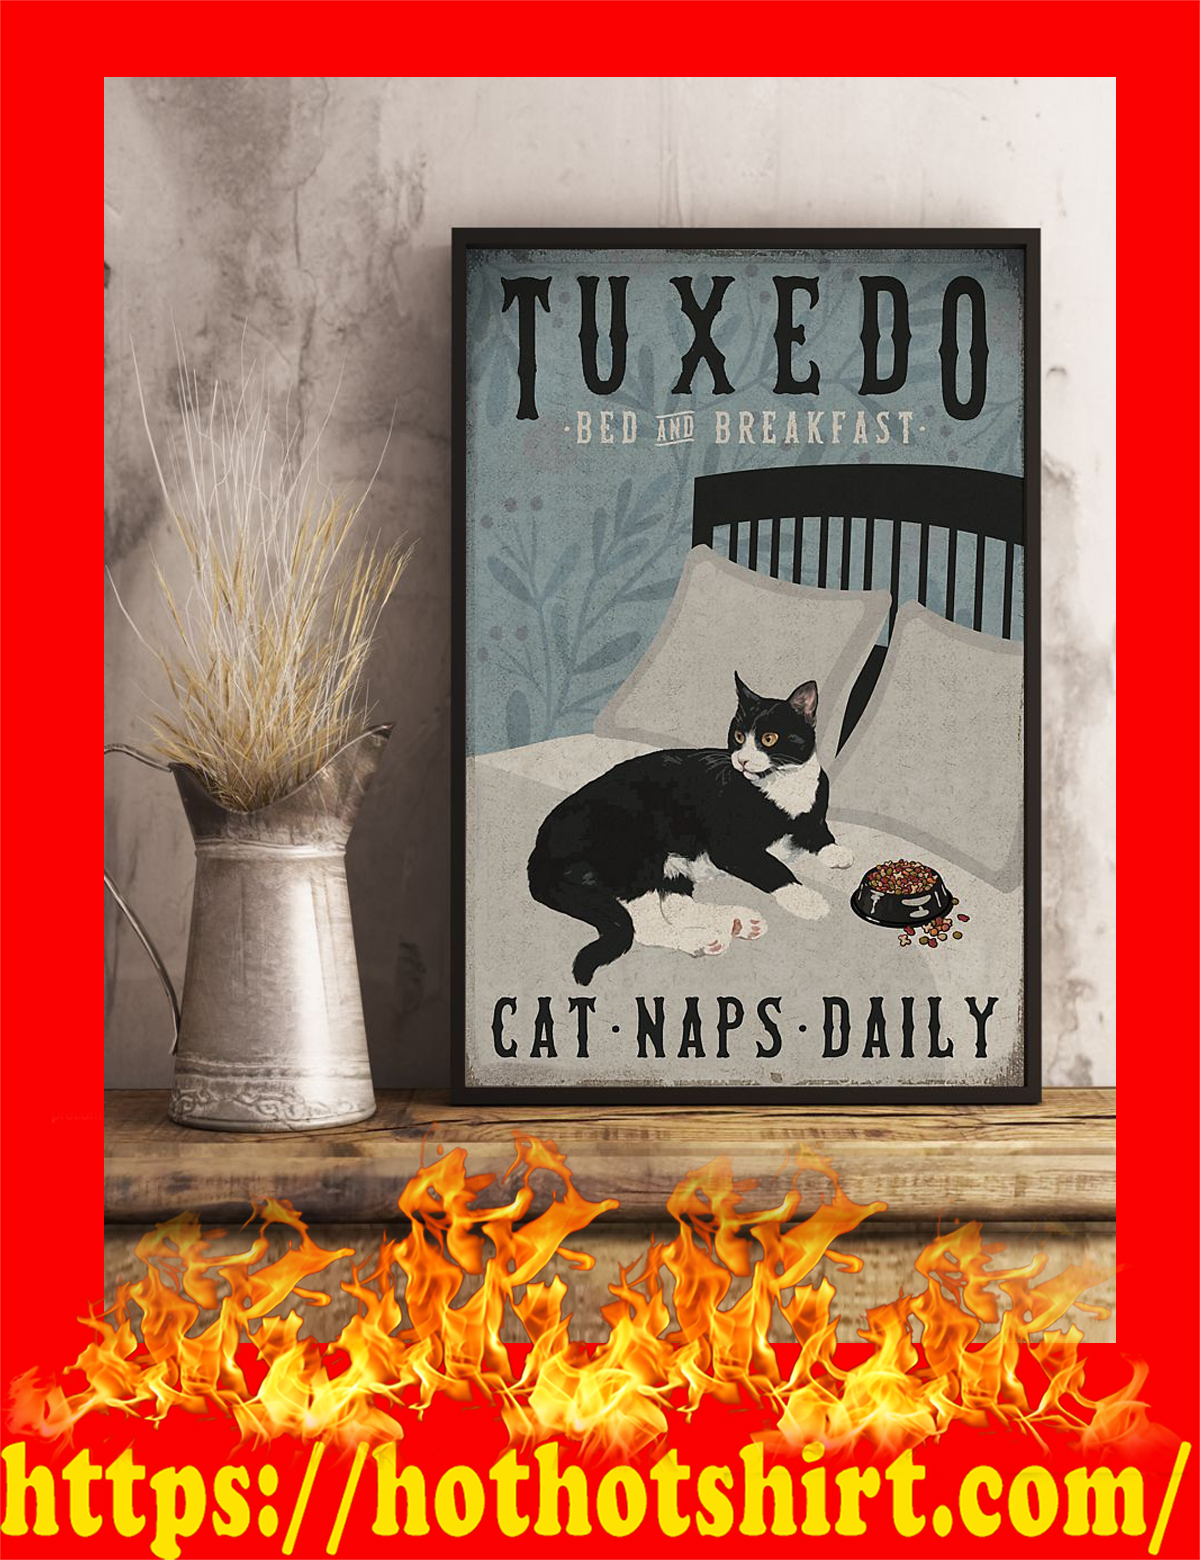 Tuxedo cat bed and breakfast cat naps daily poster